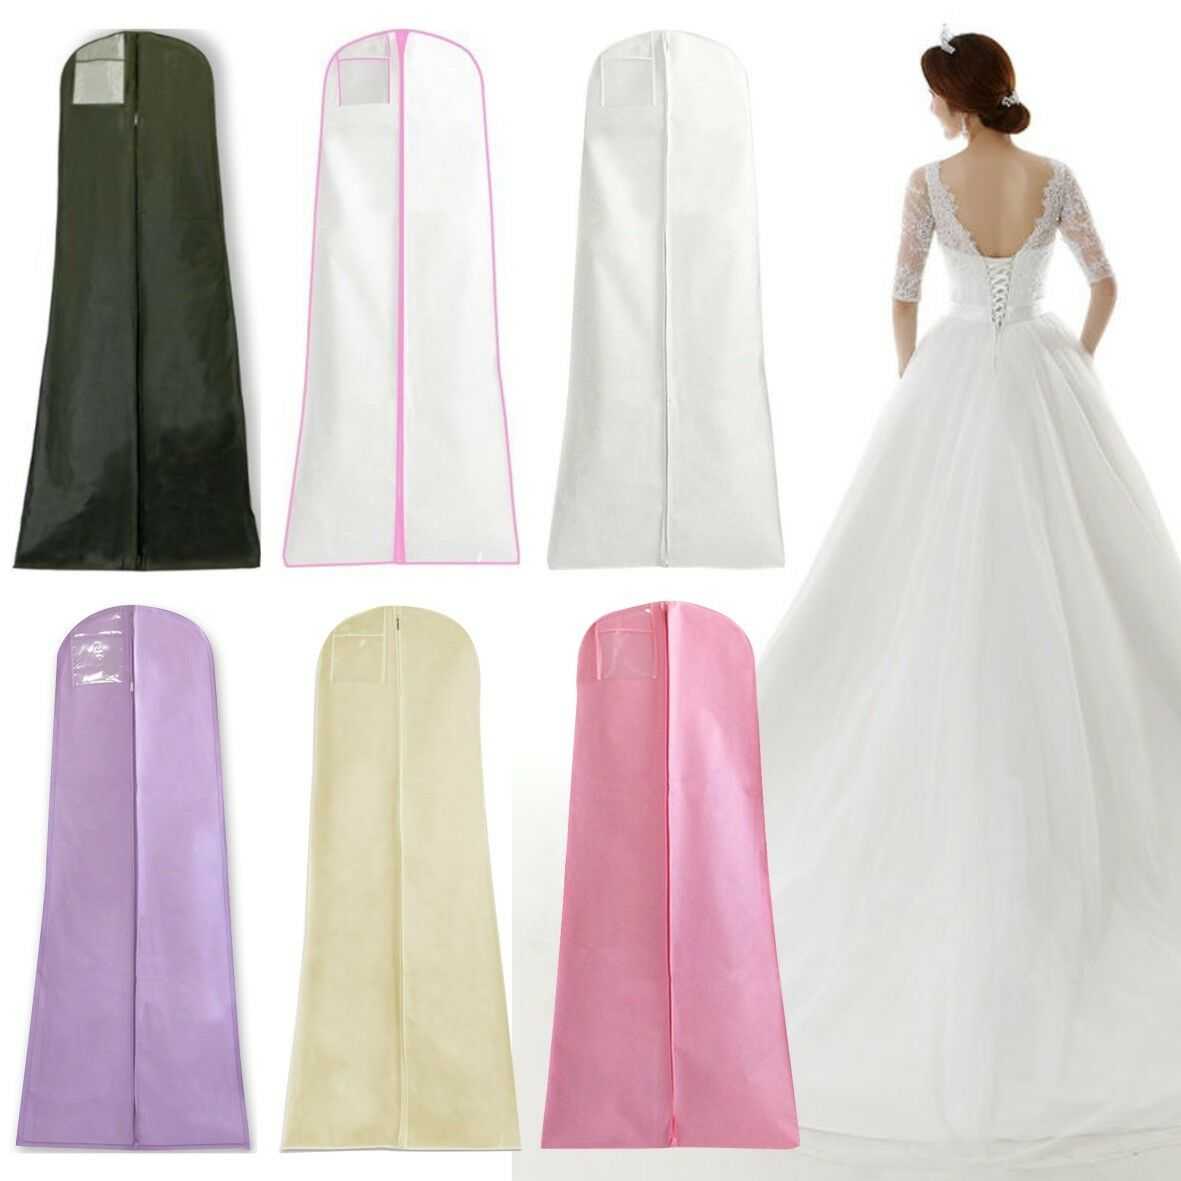 Wedding Dress Storage Bags Long Bridal Gown Garment Cover Dustproof Extra Large Ebay,Wedding Dress From Dhgate Review